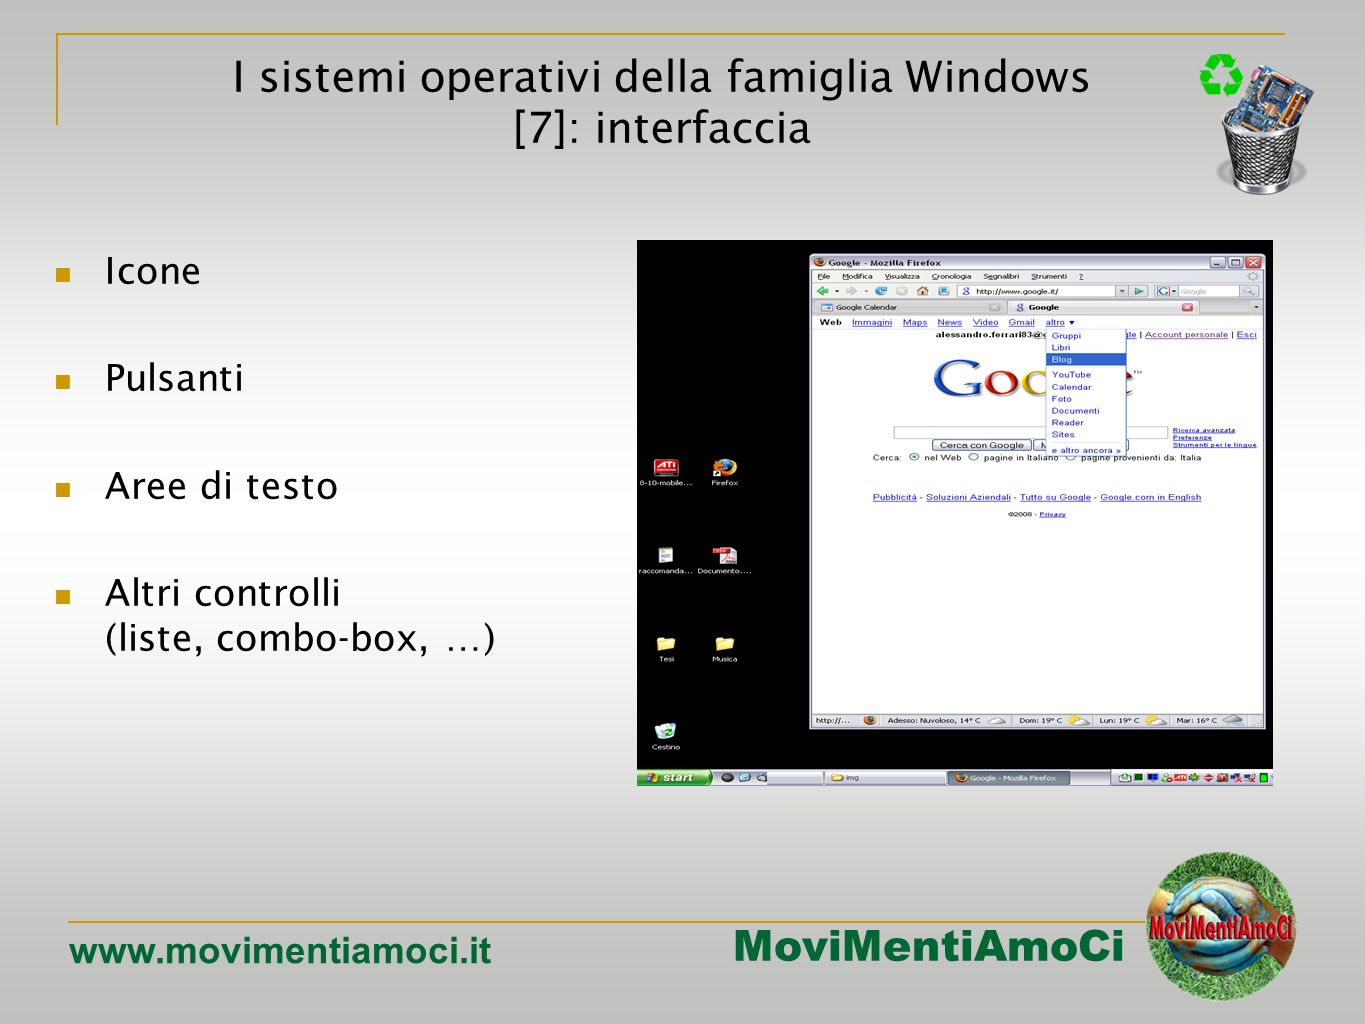 MoviMentiAmoCi www.movimentiamoci.it Icone Pulsanti Aree di testo Altri controlli (liste, combo-box, …) I sistemi operativi della famiglia Windows [7]: interfaccia